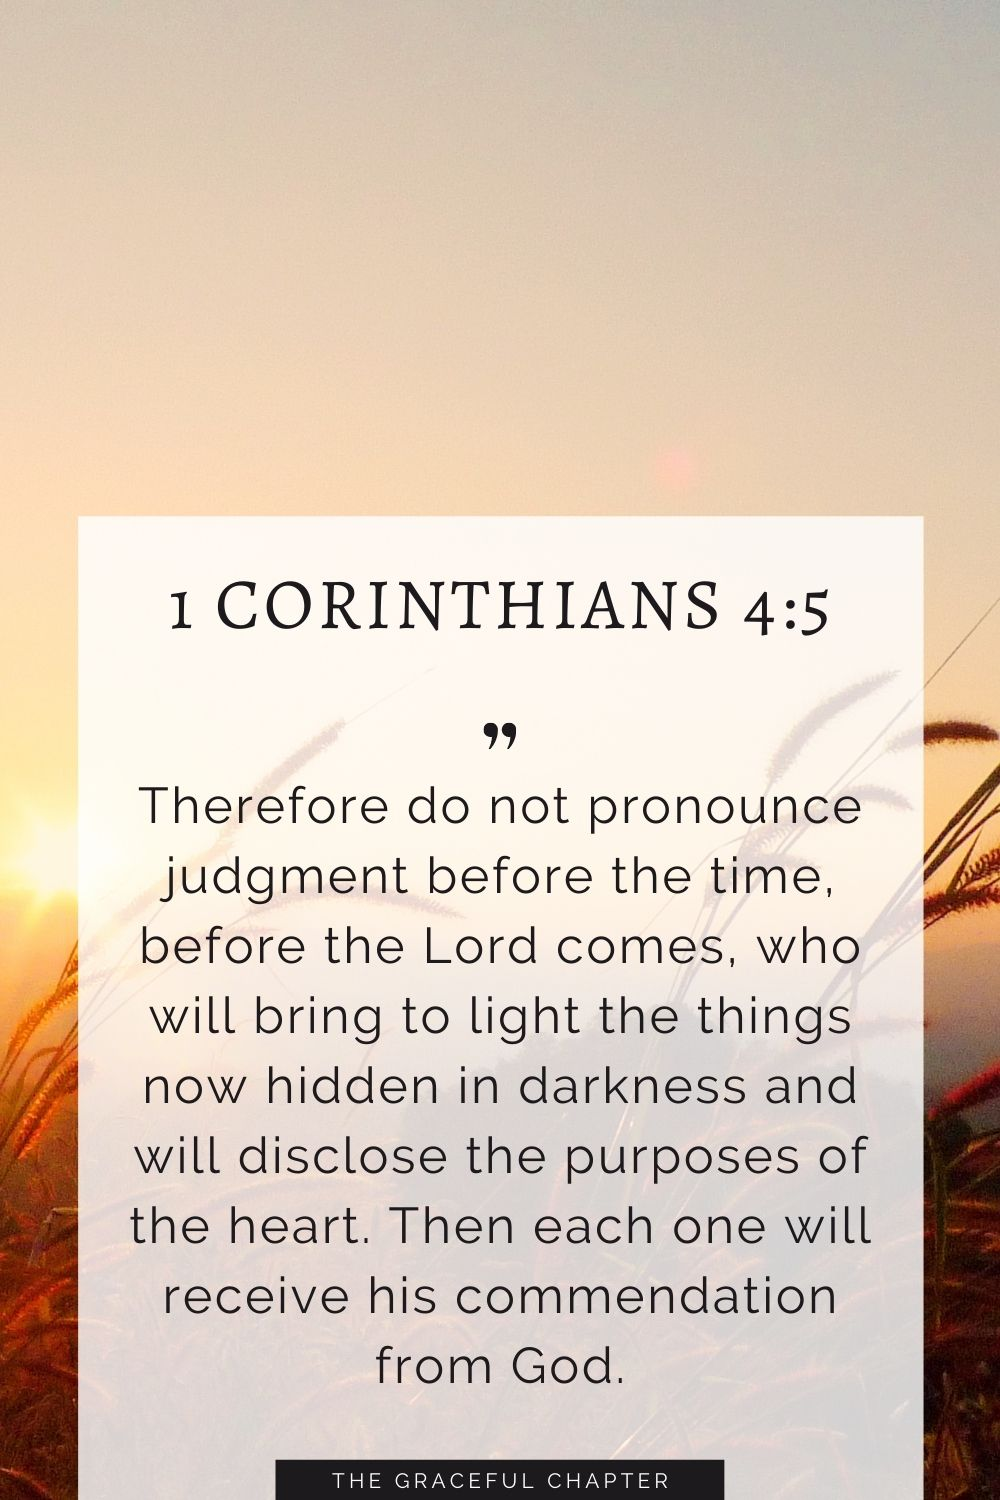 Therefore do not pronounce judgment before the time, before the Lord comes, who will bring to light the things now hidden in darkness and will disclose the purposes of the heart. Then each one will receive his commendation from God. 1 Corinthians 4:5